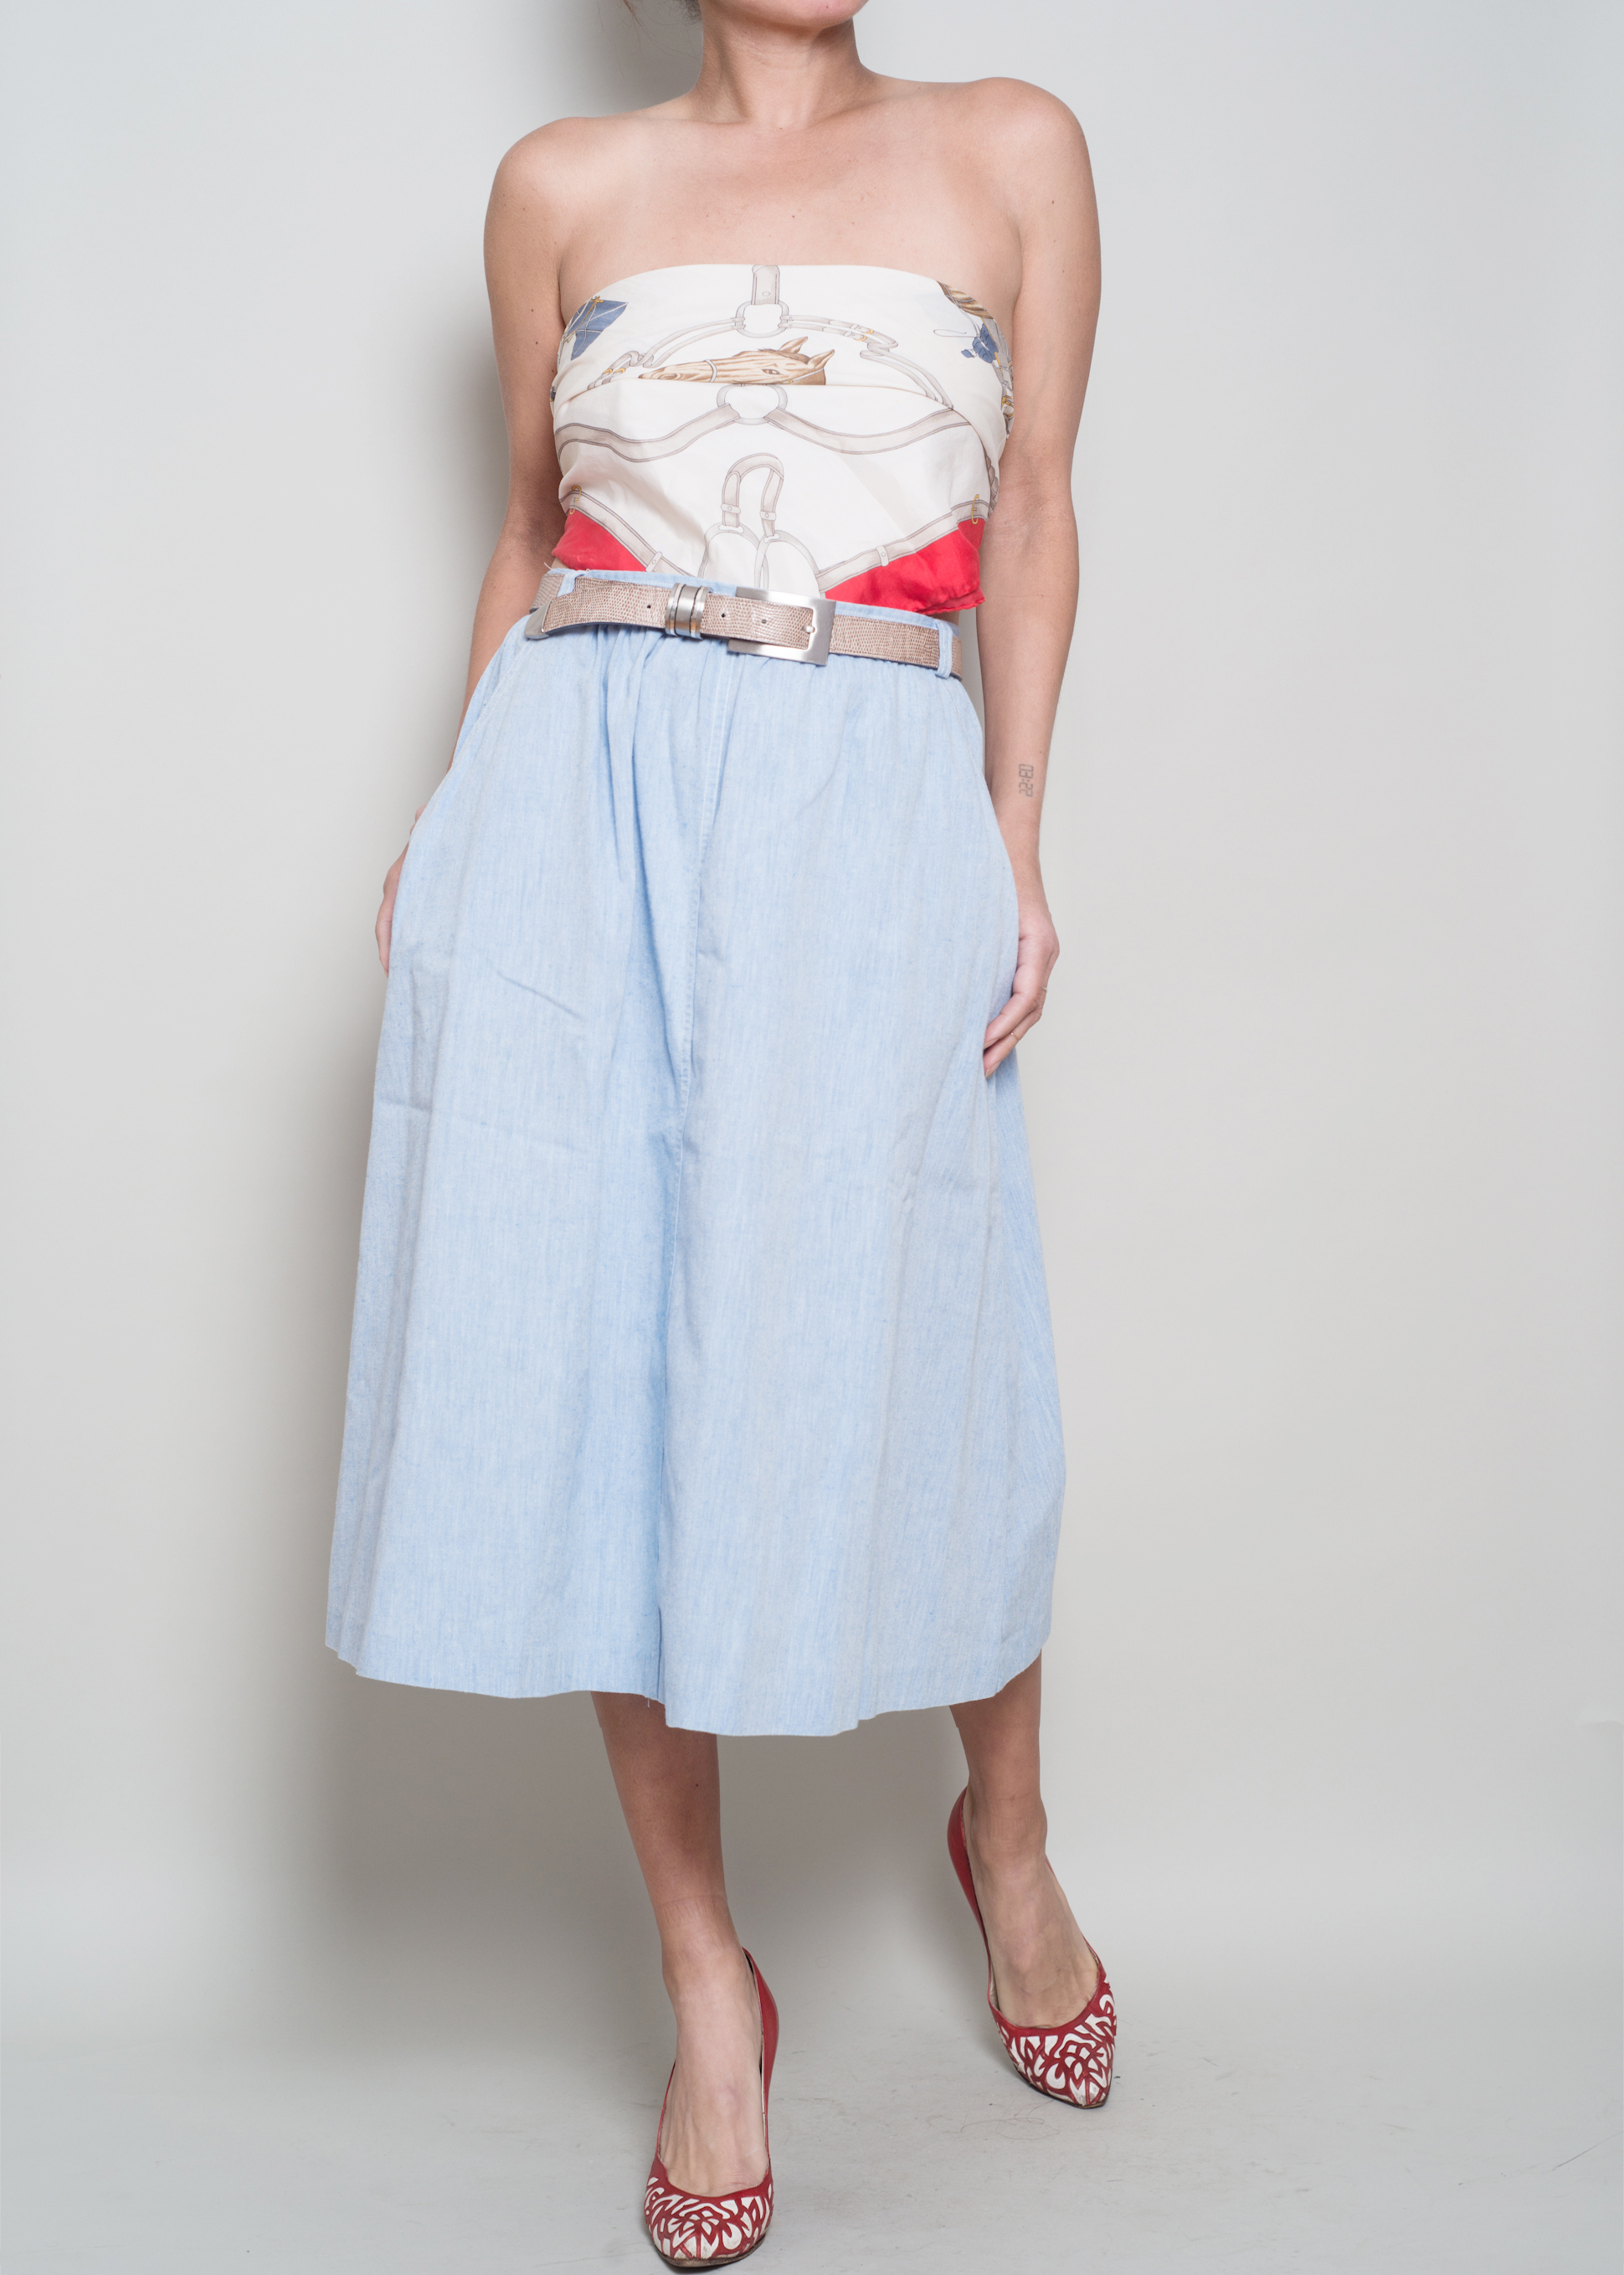 A_Part_of_the_Rest_Vintage_Chambray_Midi_Skirt004.jpg